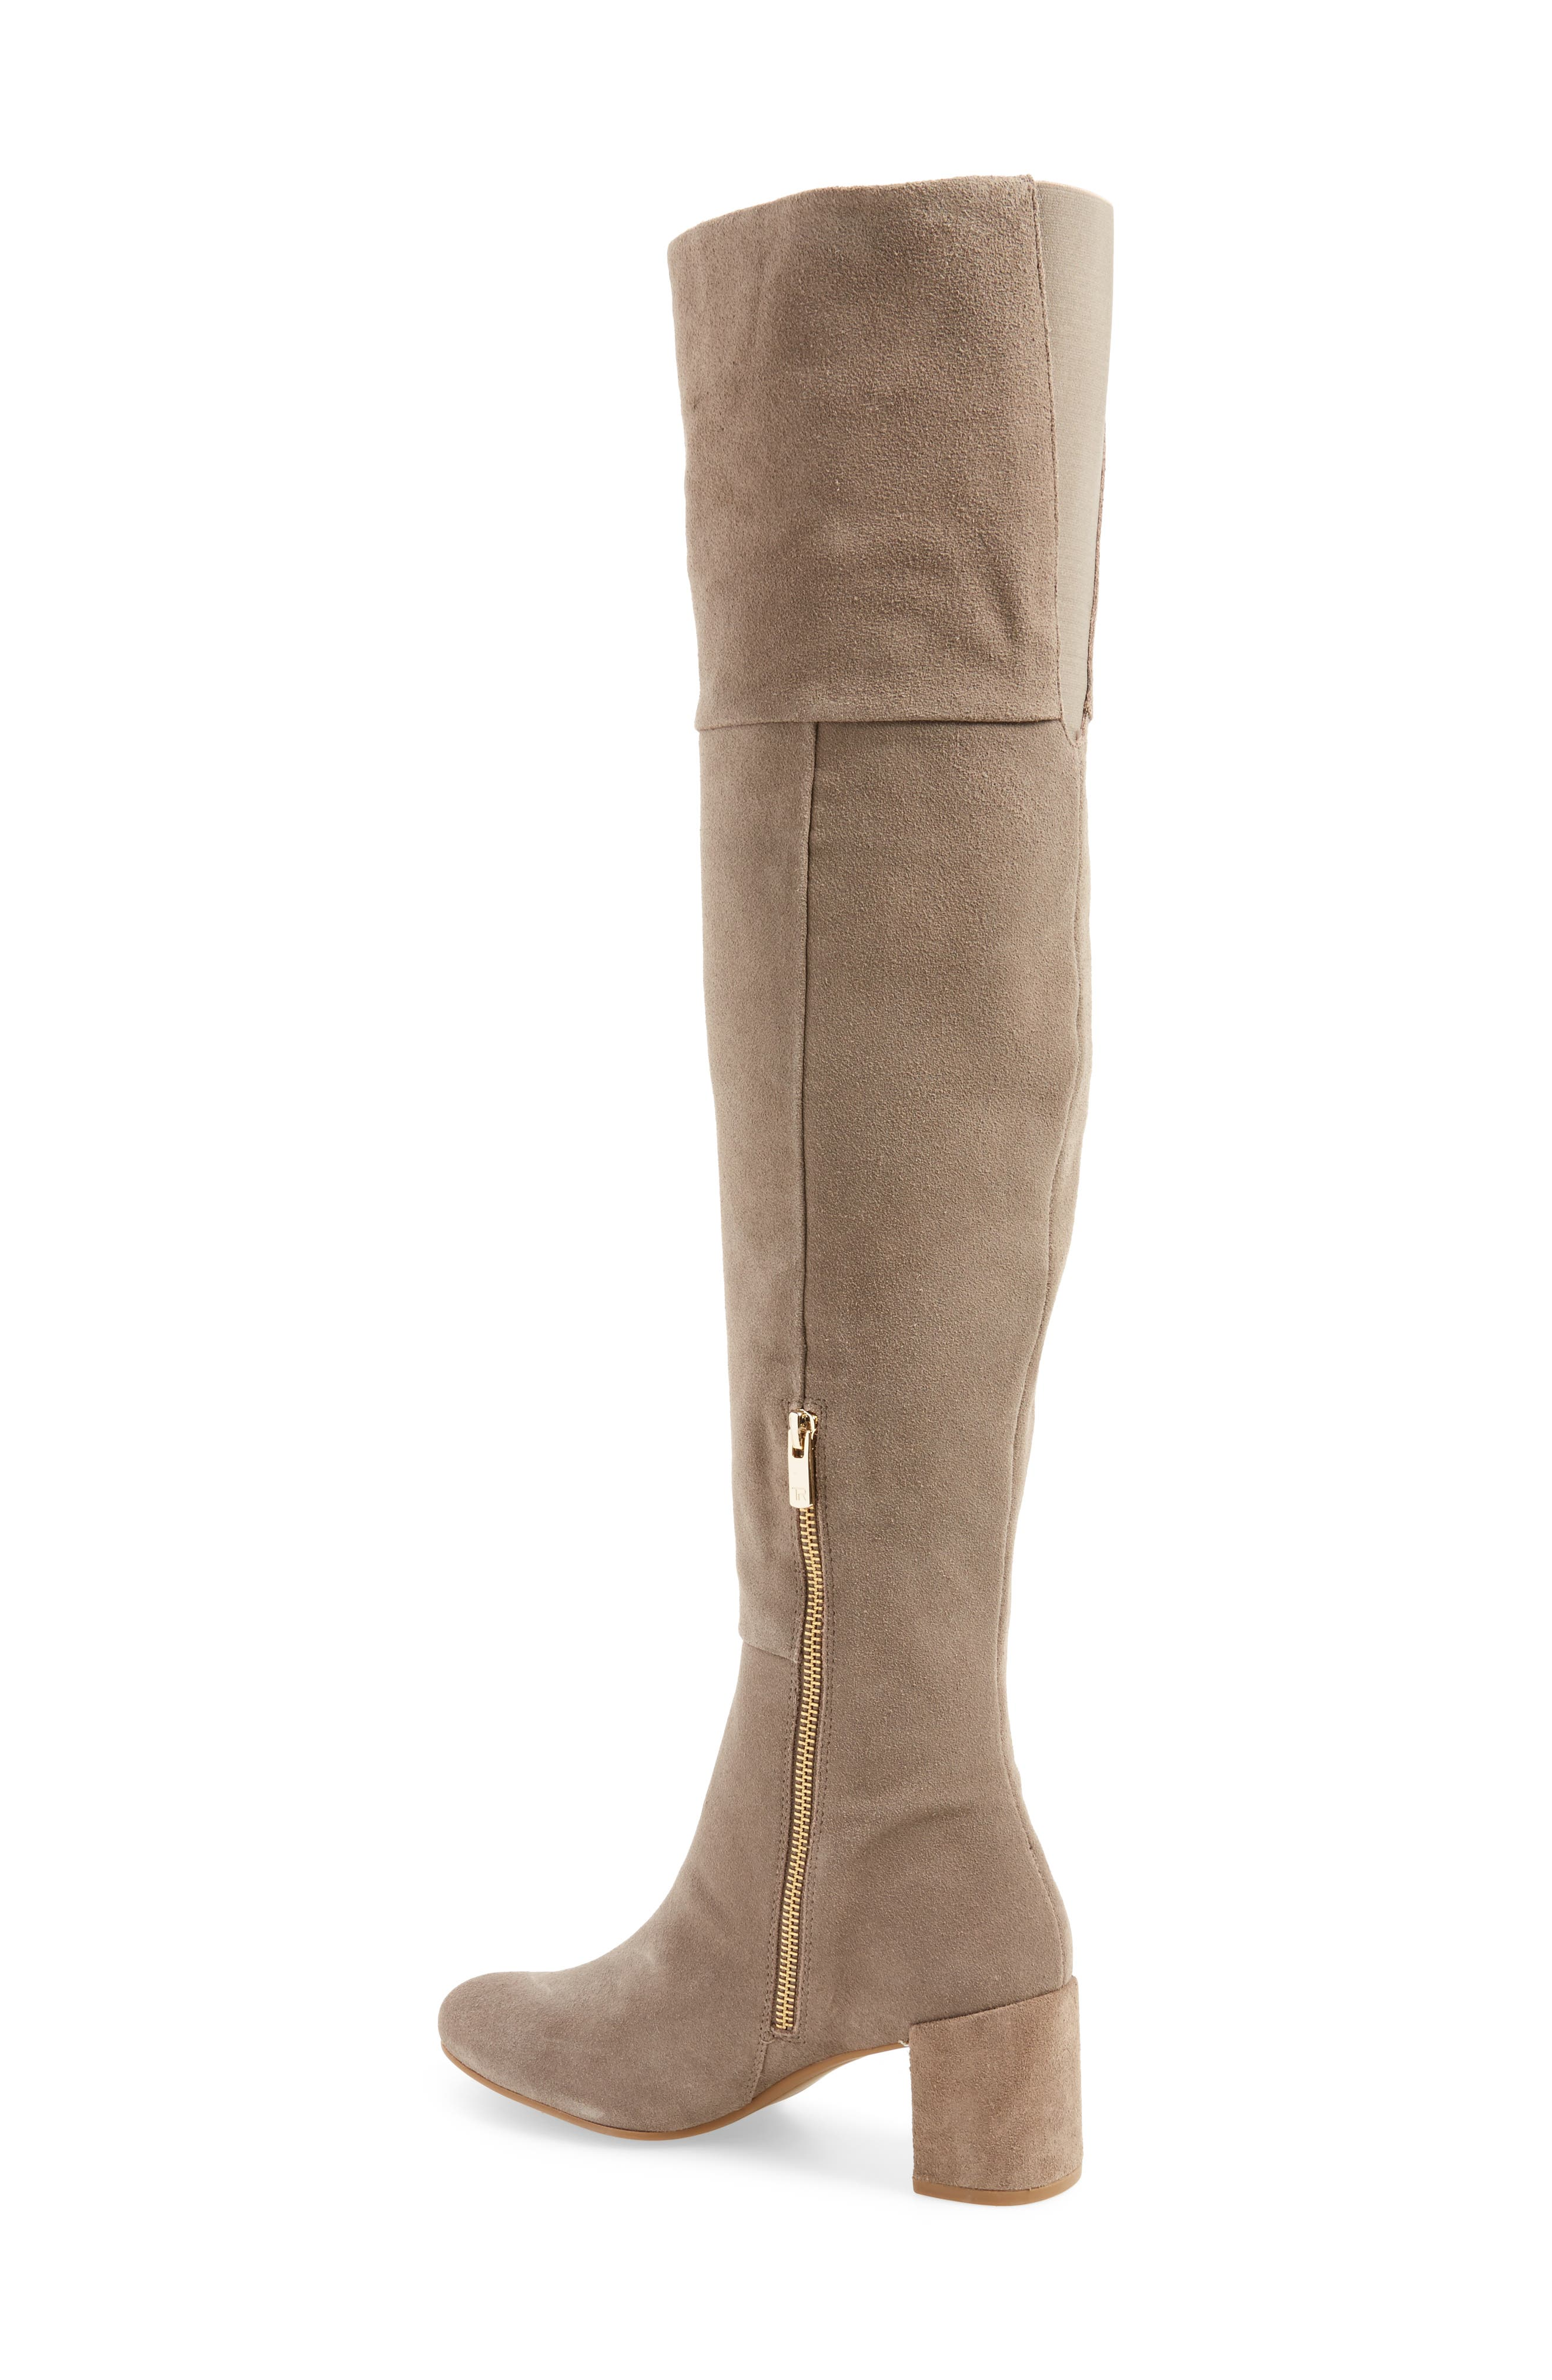 Catherine Over the Knee Boot,                             Alternate thumbnail 2, color,                             Grey Suede